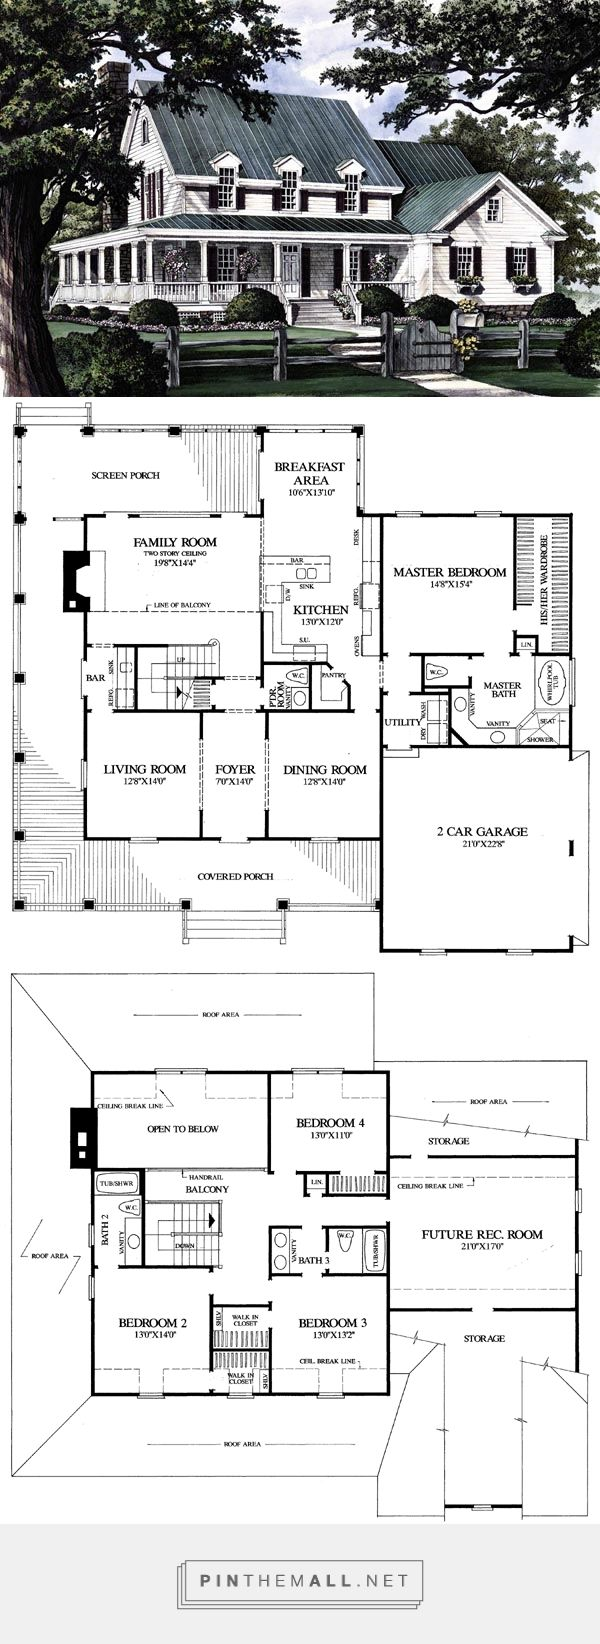 352 best house ideas images on pinterest house floor plans house plan 86162 at familyhomeplans com created via http pinthemall dream house planscountry